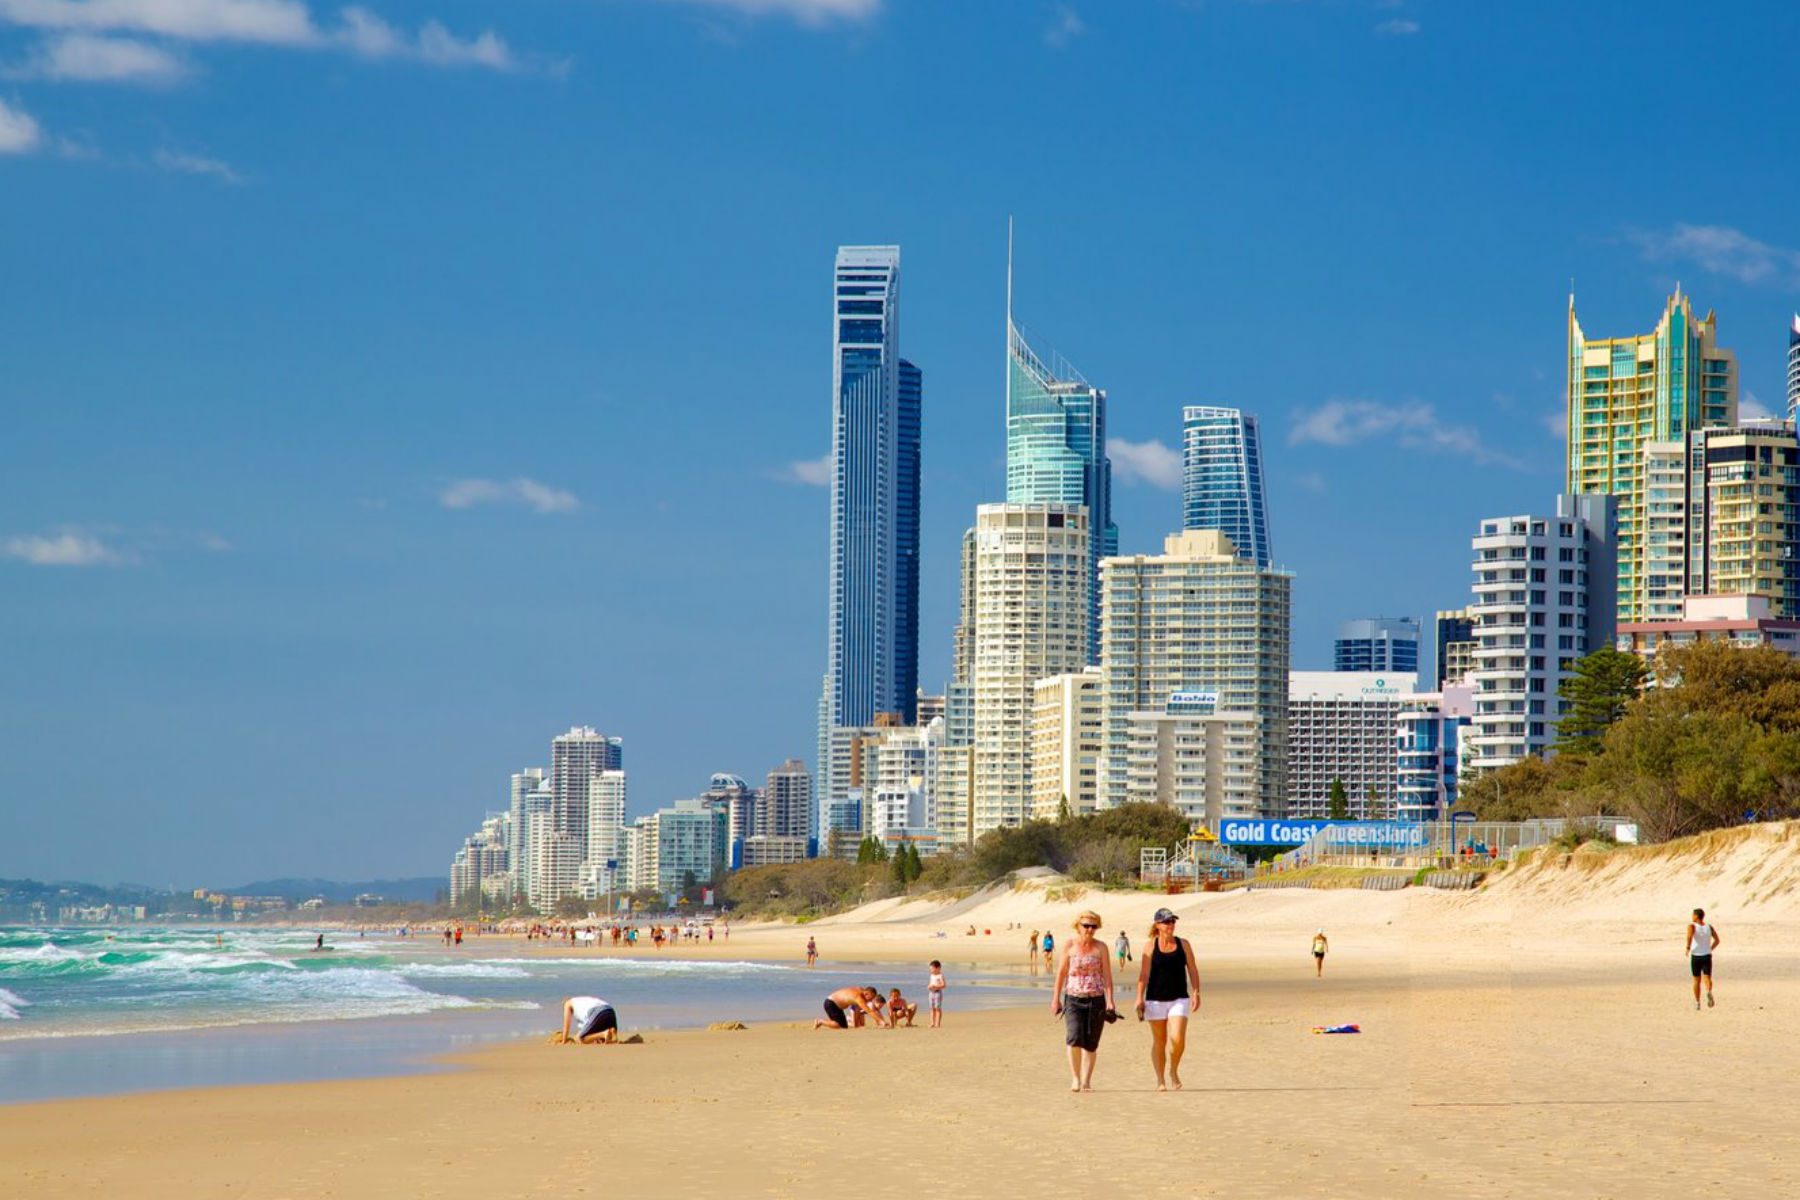 the best of miami - gold coast info